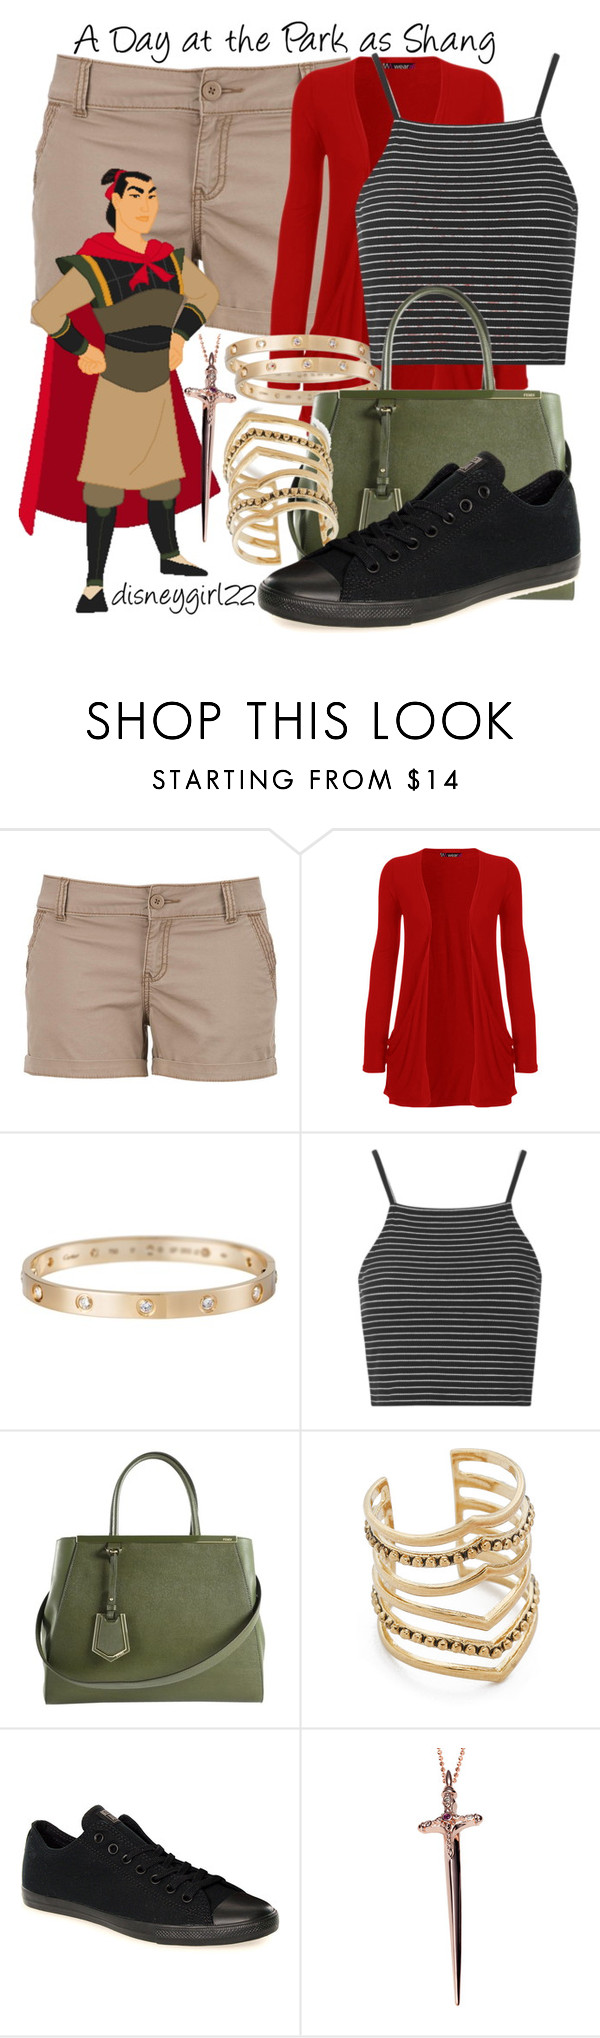 """""""A Day at the Park as Shang"""" by disneygirl22 ❤ liked on Polyvore featuring maurices, Disney, WearAll, Cartier, Topshop, Fendi, SunaharA, Converse, Rachel Roy and disney"""